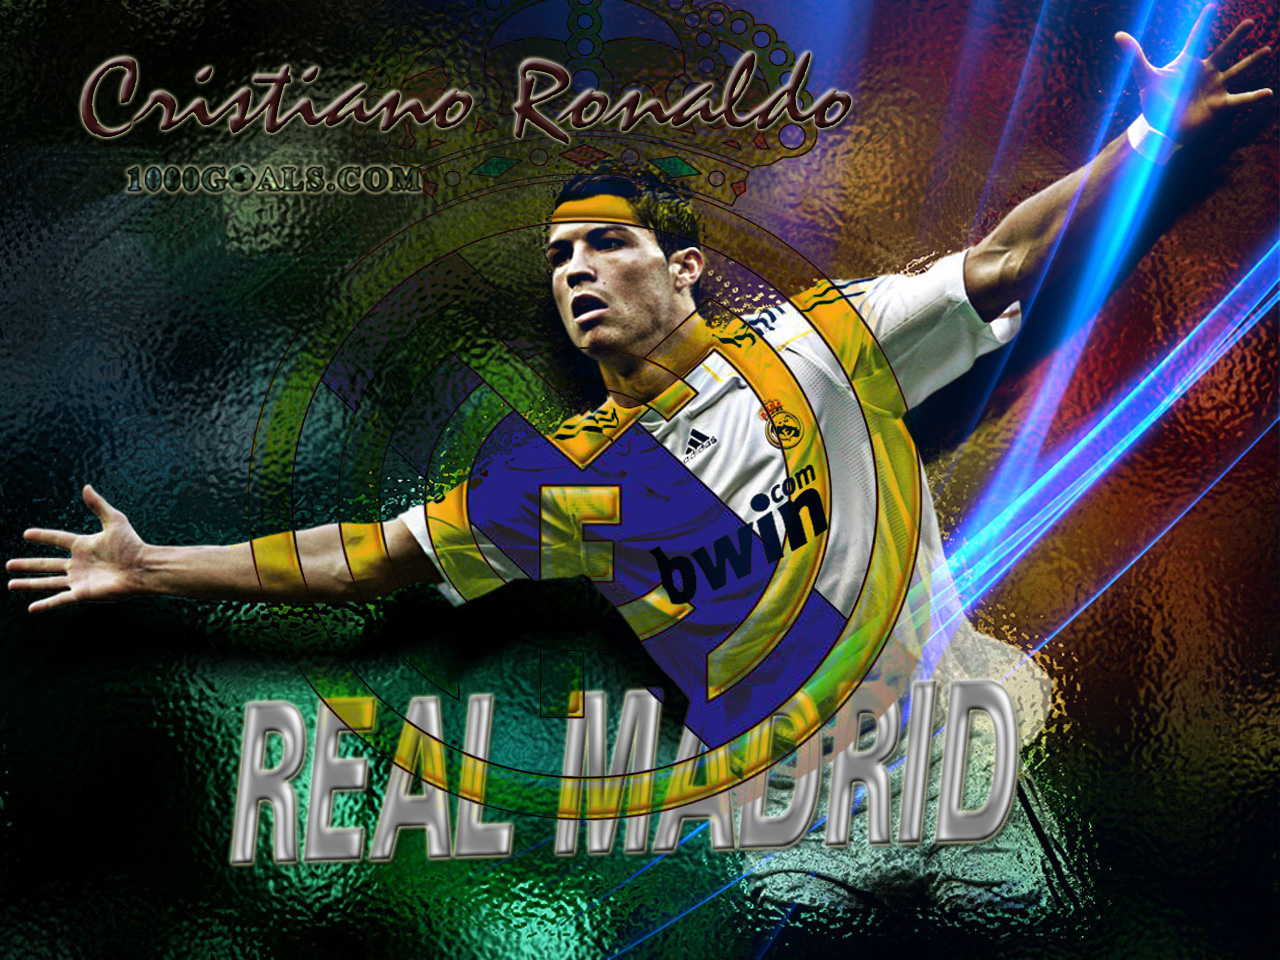 Cristiano Ronaldo Real Madrid Wallpaper Is Wallapers For Pc Desktop